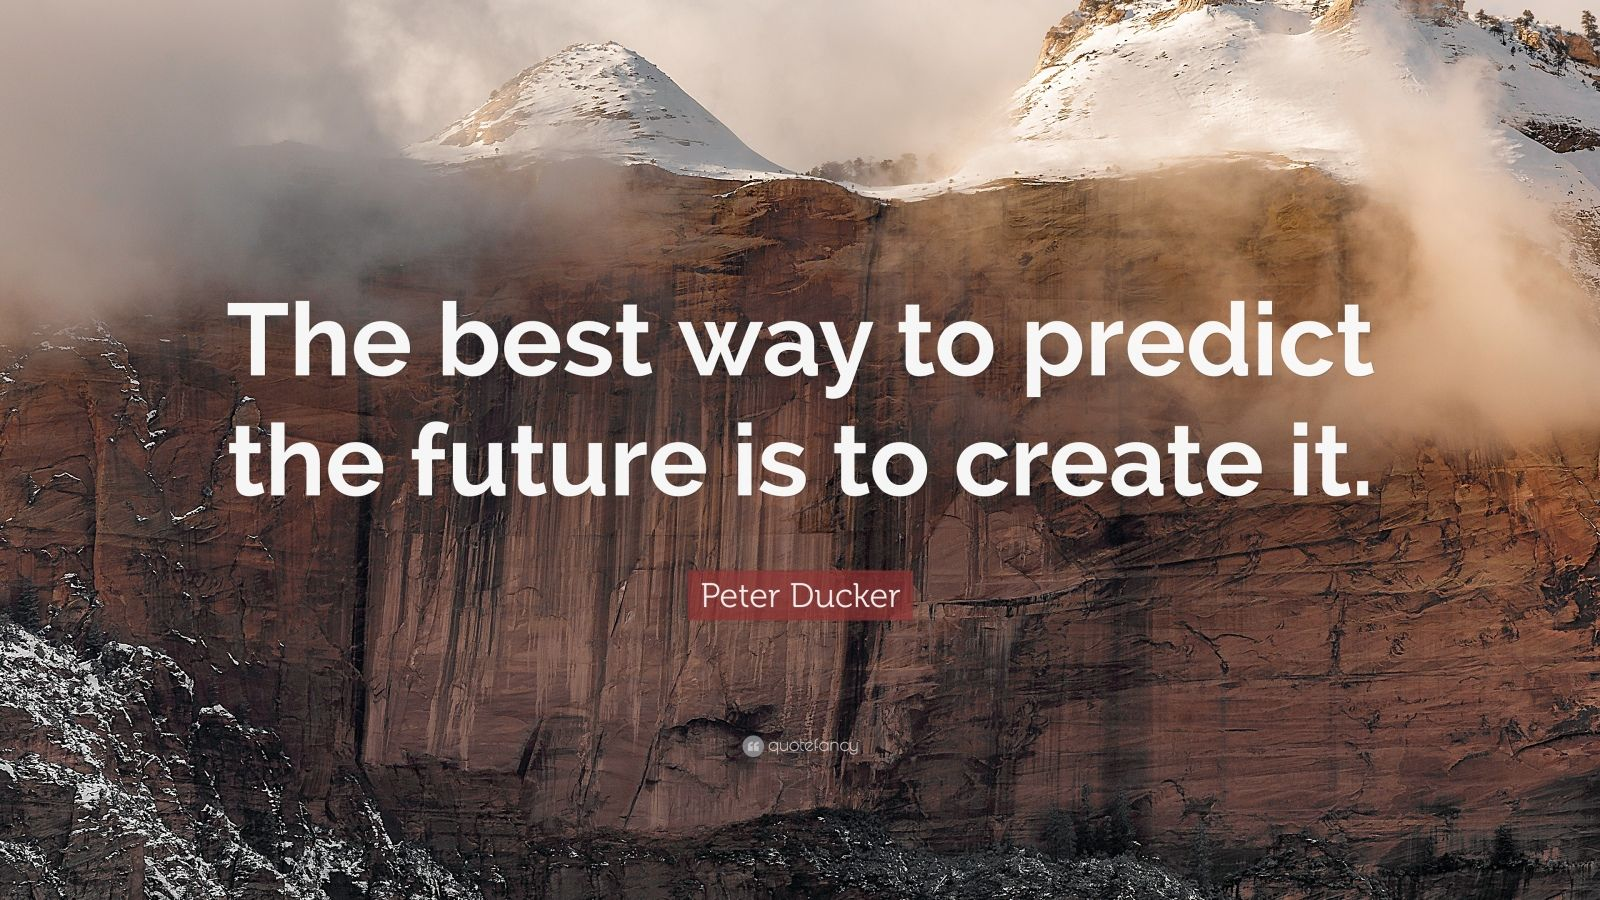 Peter Ducker Quote The best way to predict the future is to create it 21 wallpapers